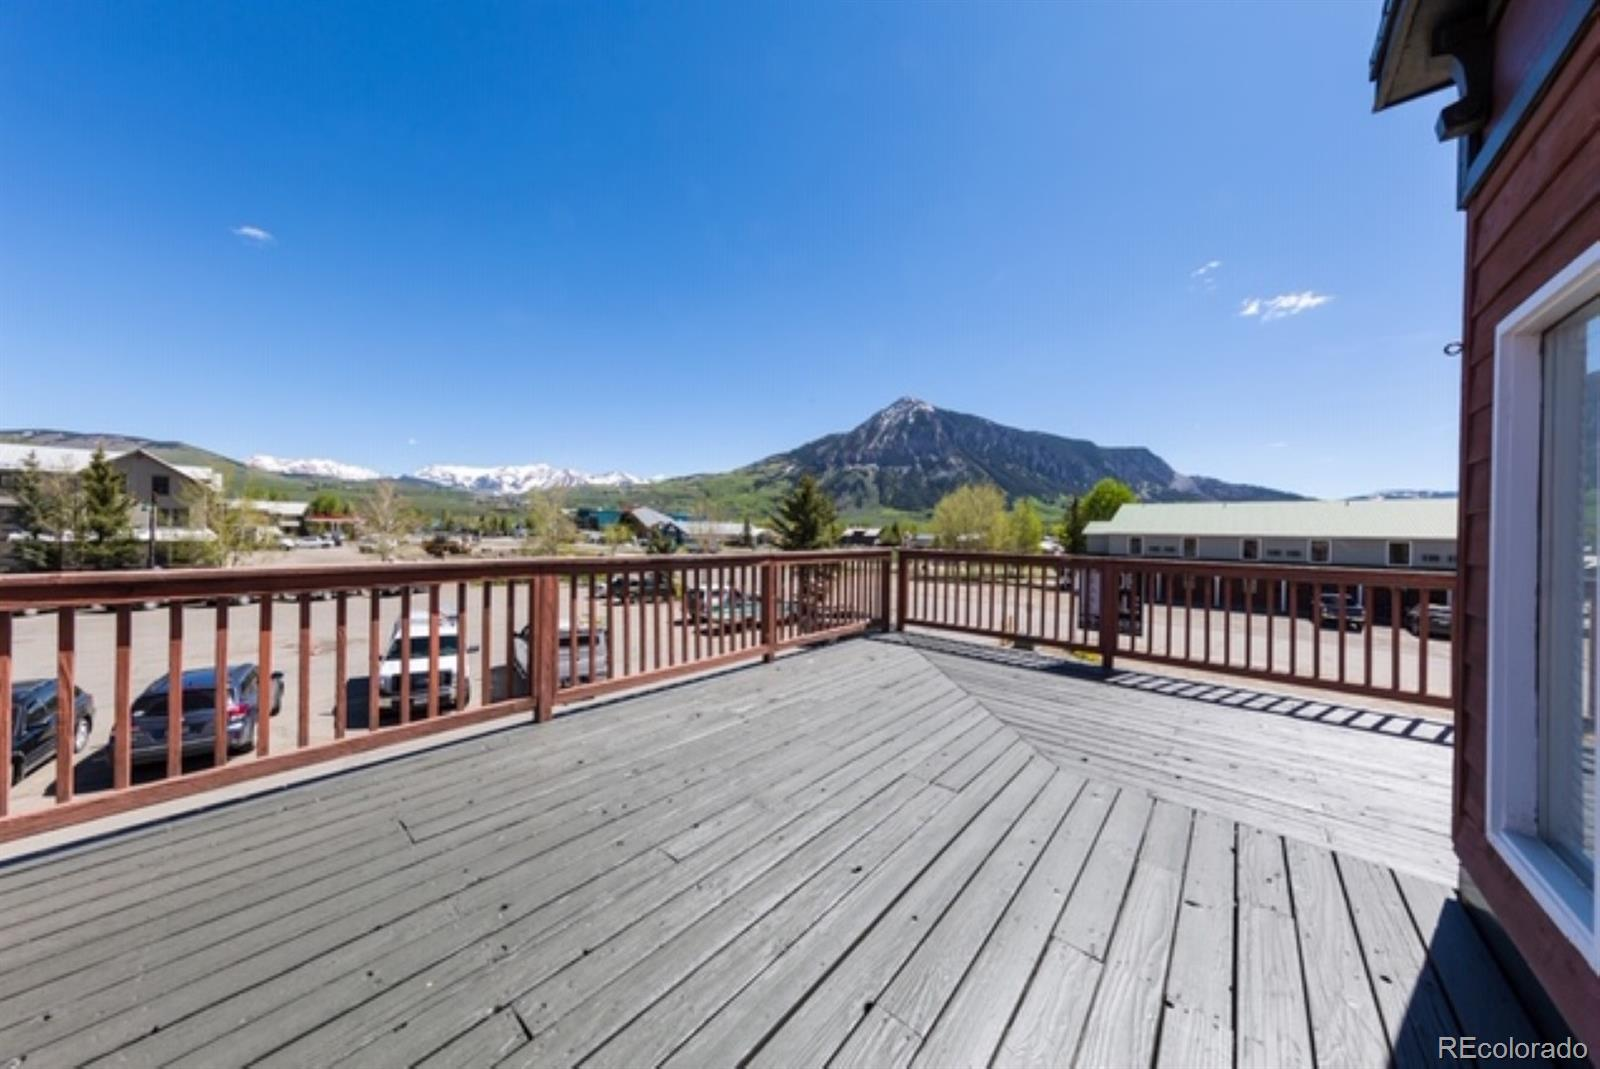 717 6th Street #F, Crested Butte, CO 81224 - Crested Butte, CO real estate listing